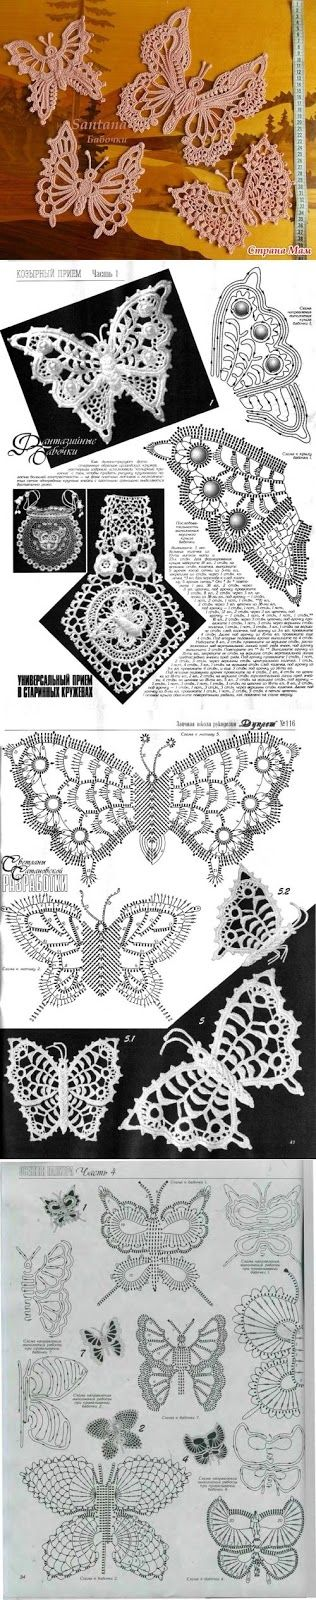 Irish crochet lace motifs patterns                                                                                                                                                      More